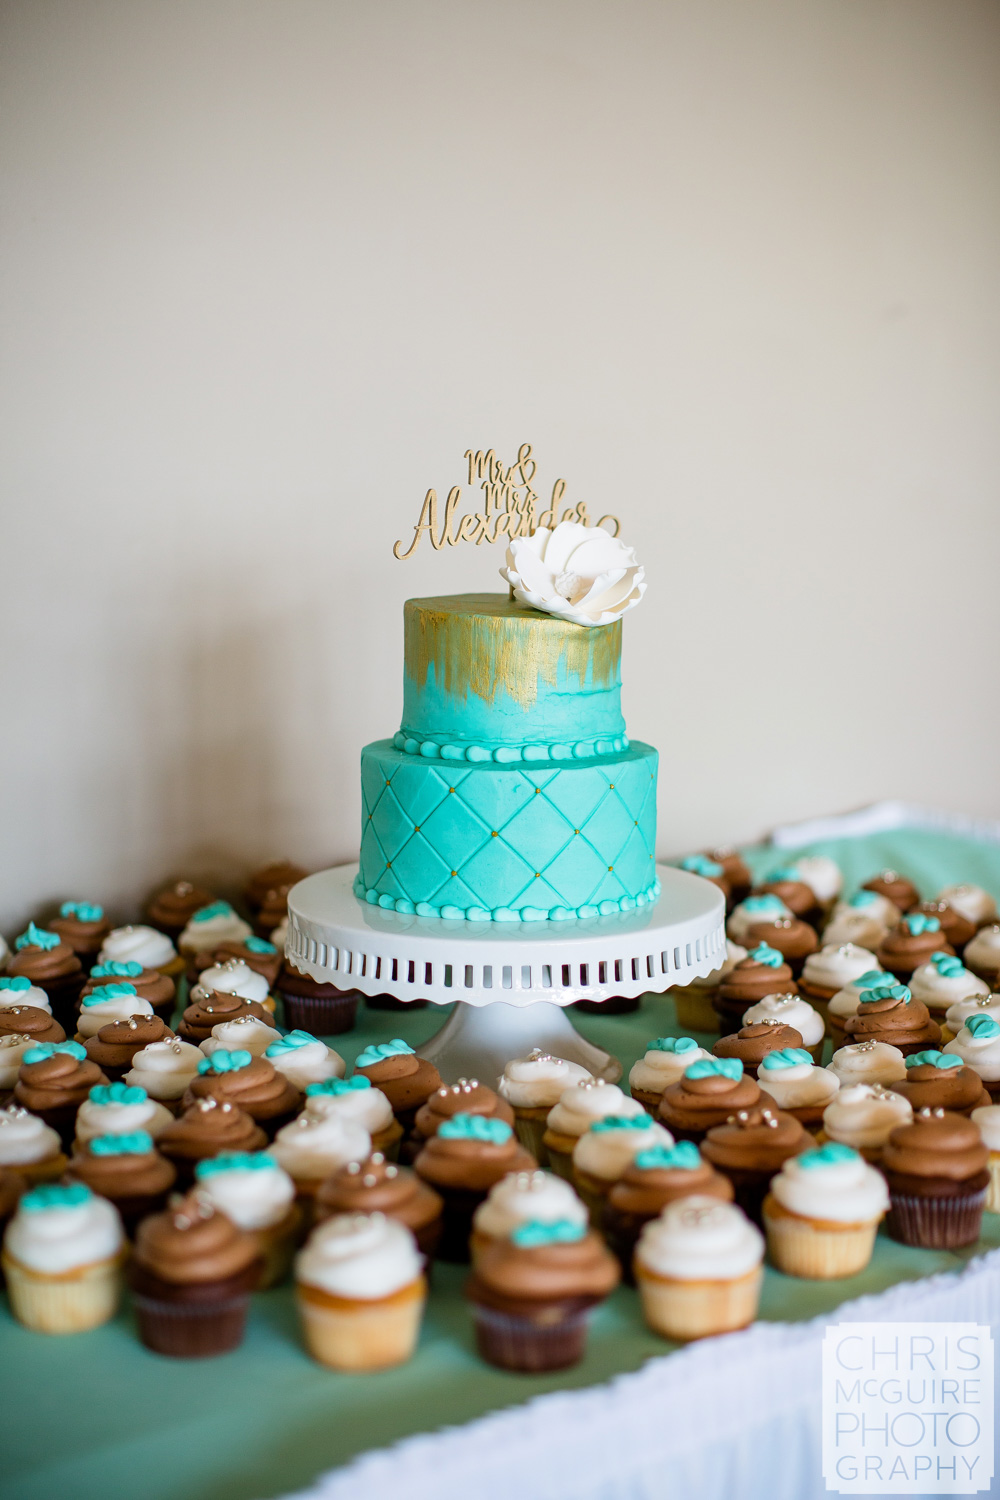 Janet's Cake and Catering wedding cake